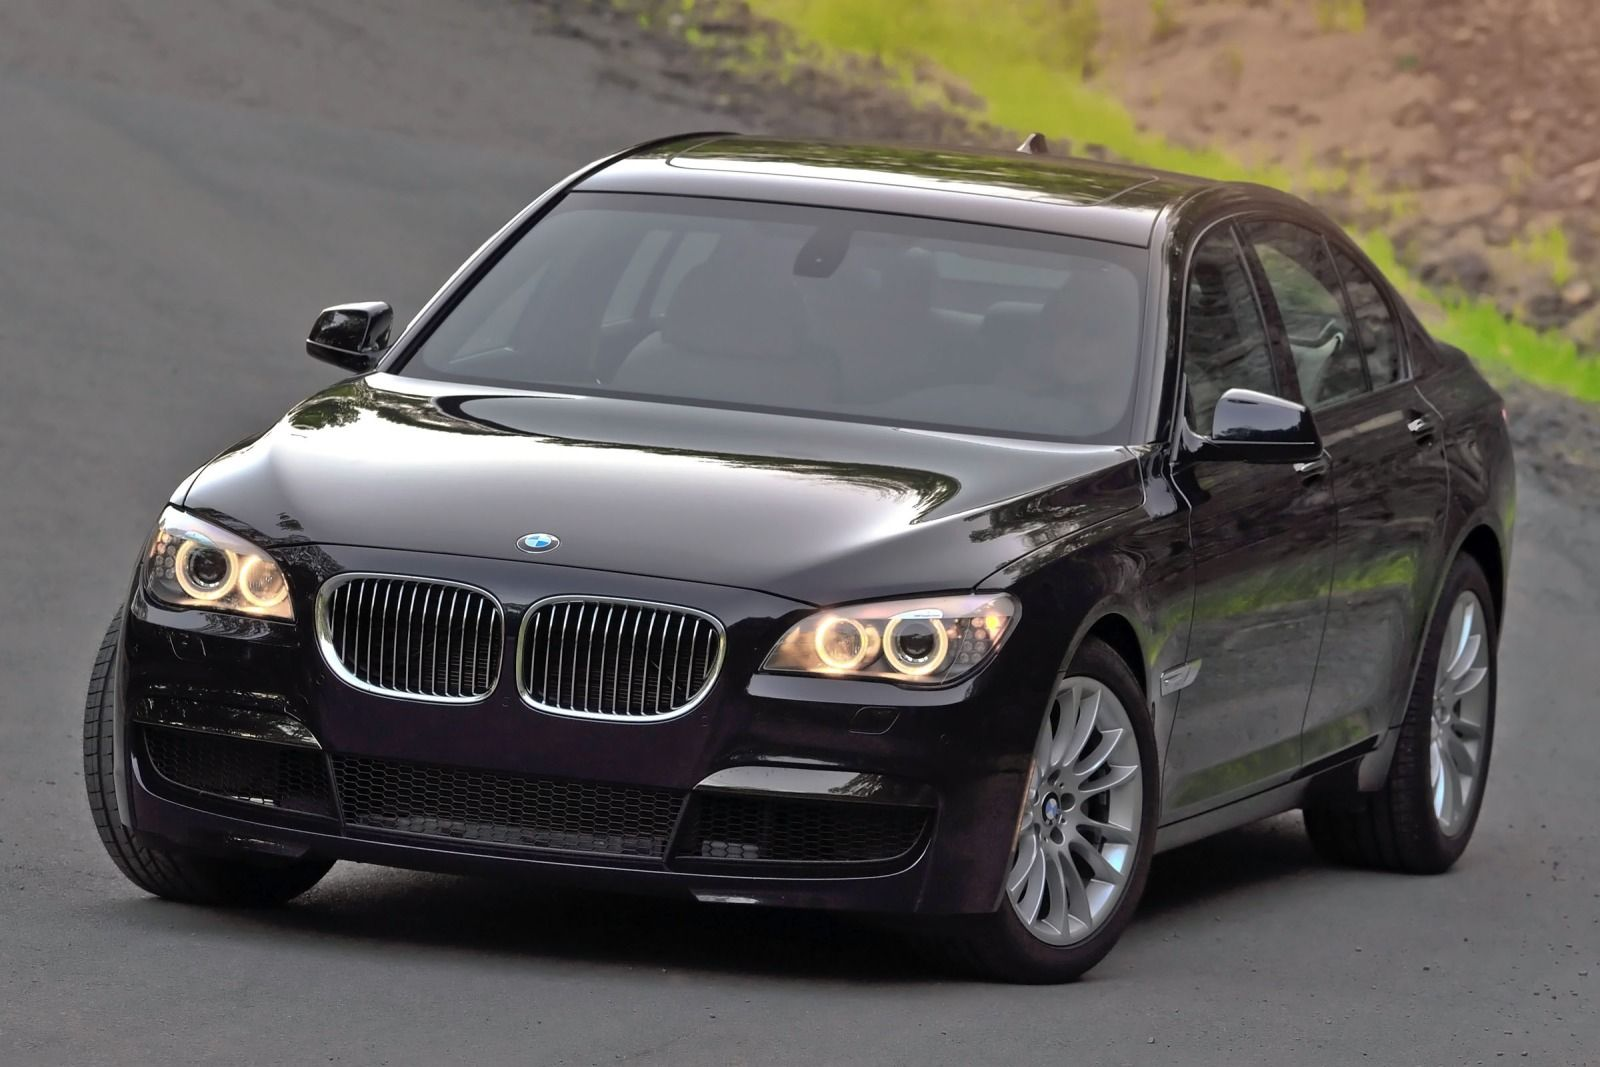 BMW 7 series 740i 2012 photo - 3